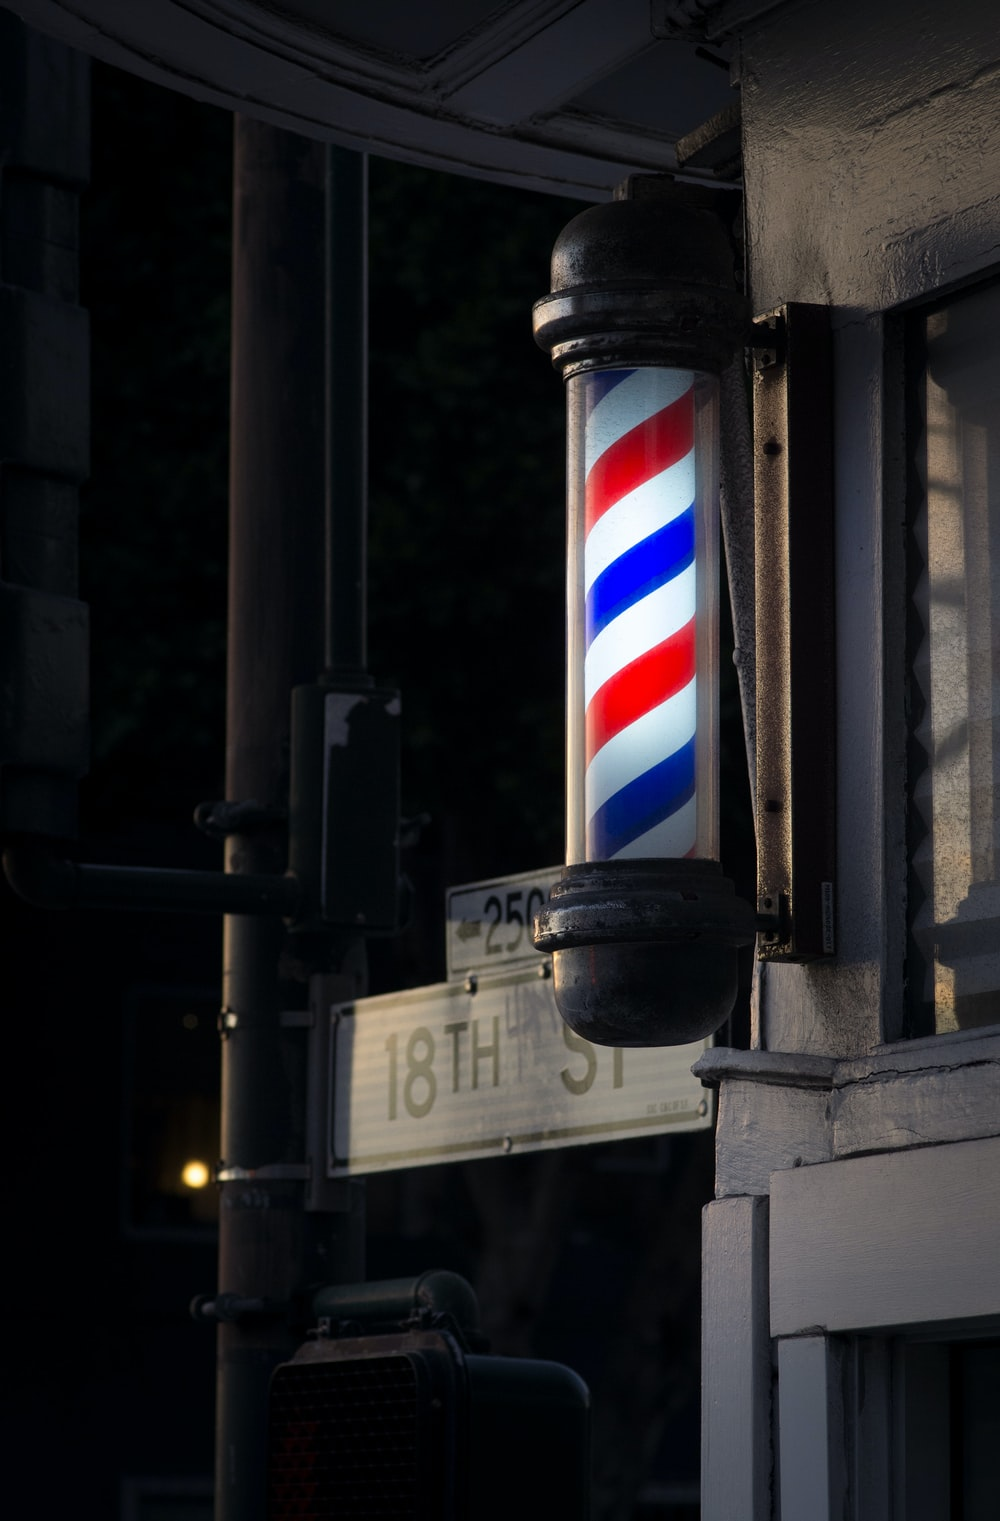 white, red, and blue barber's pole